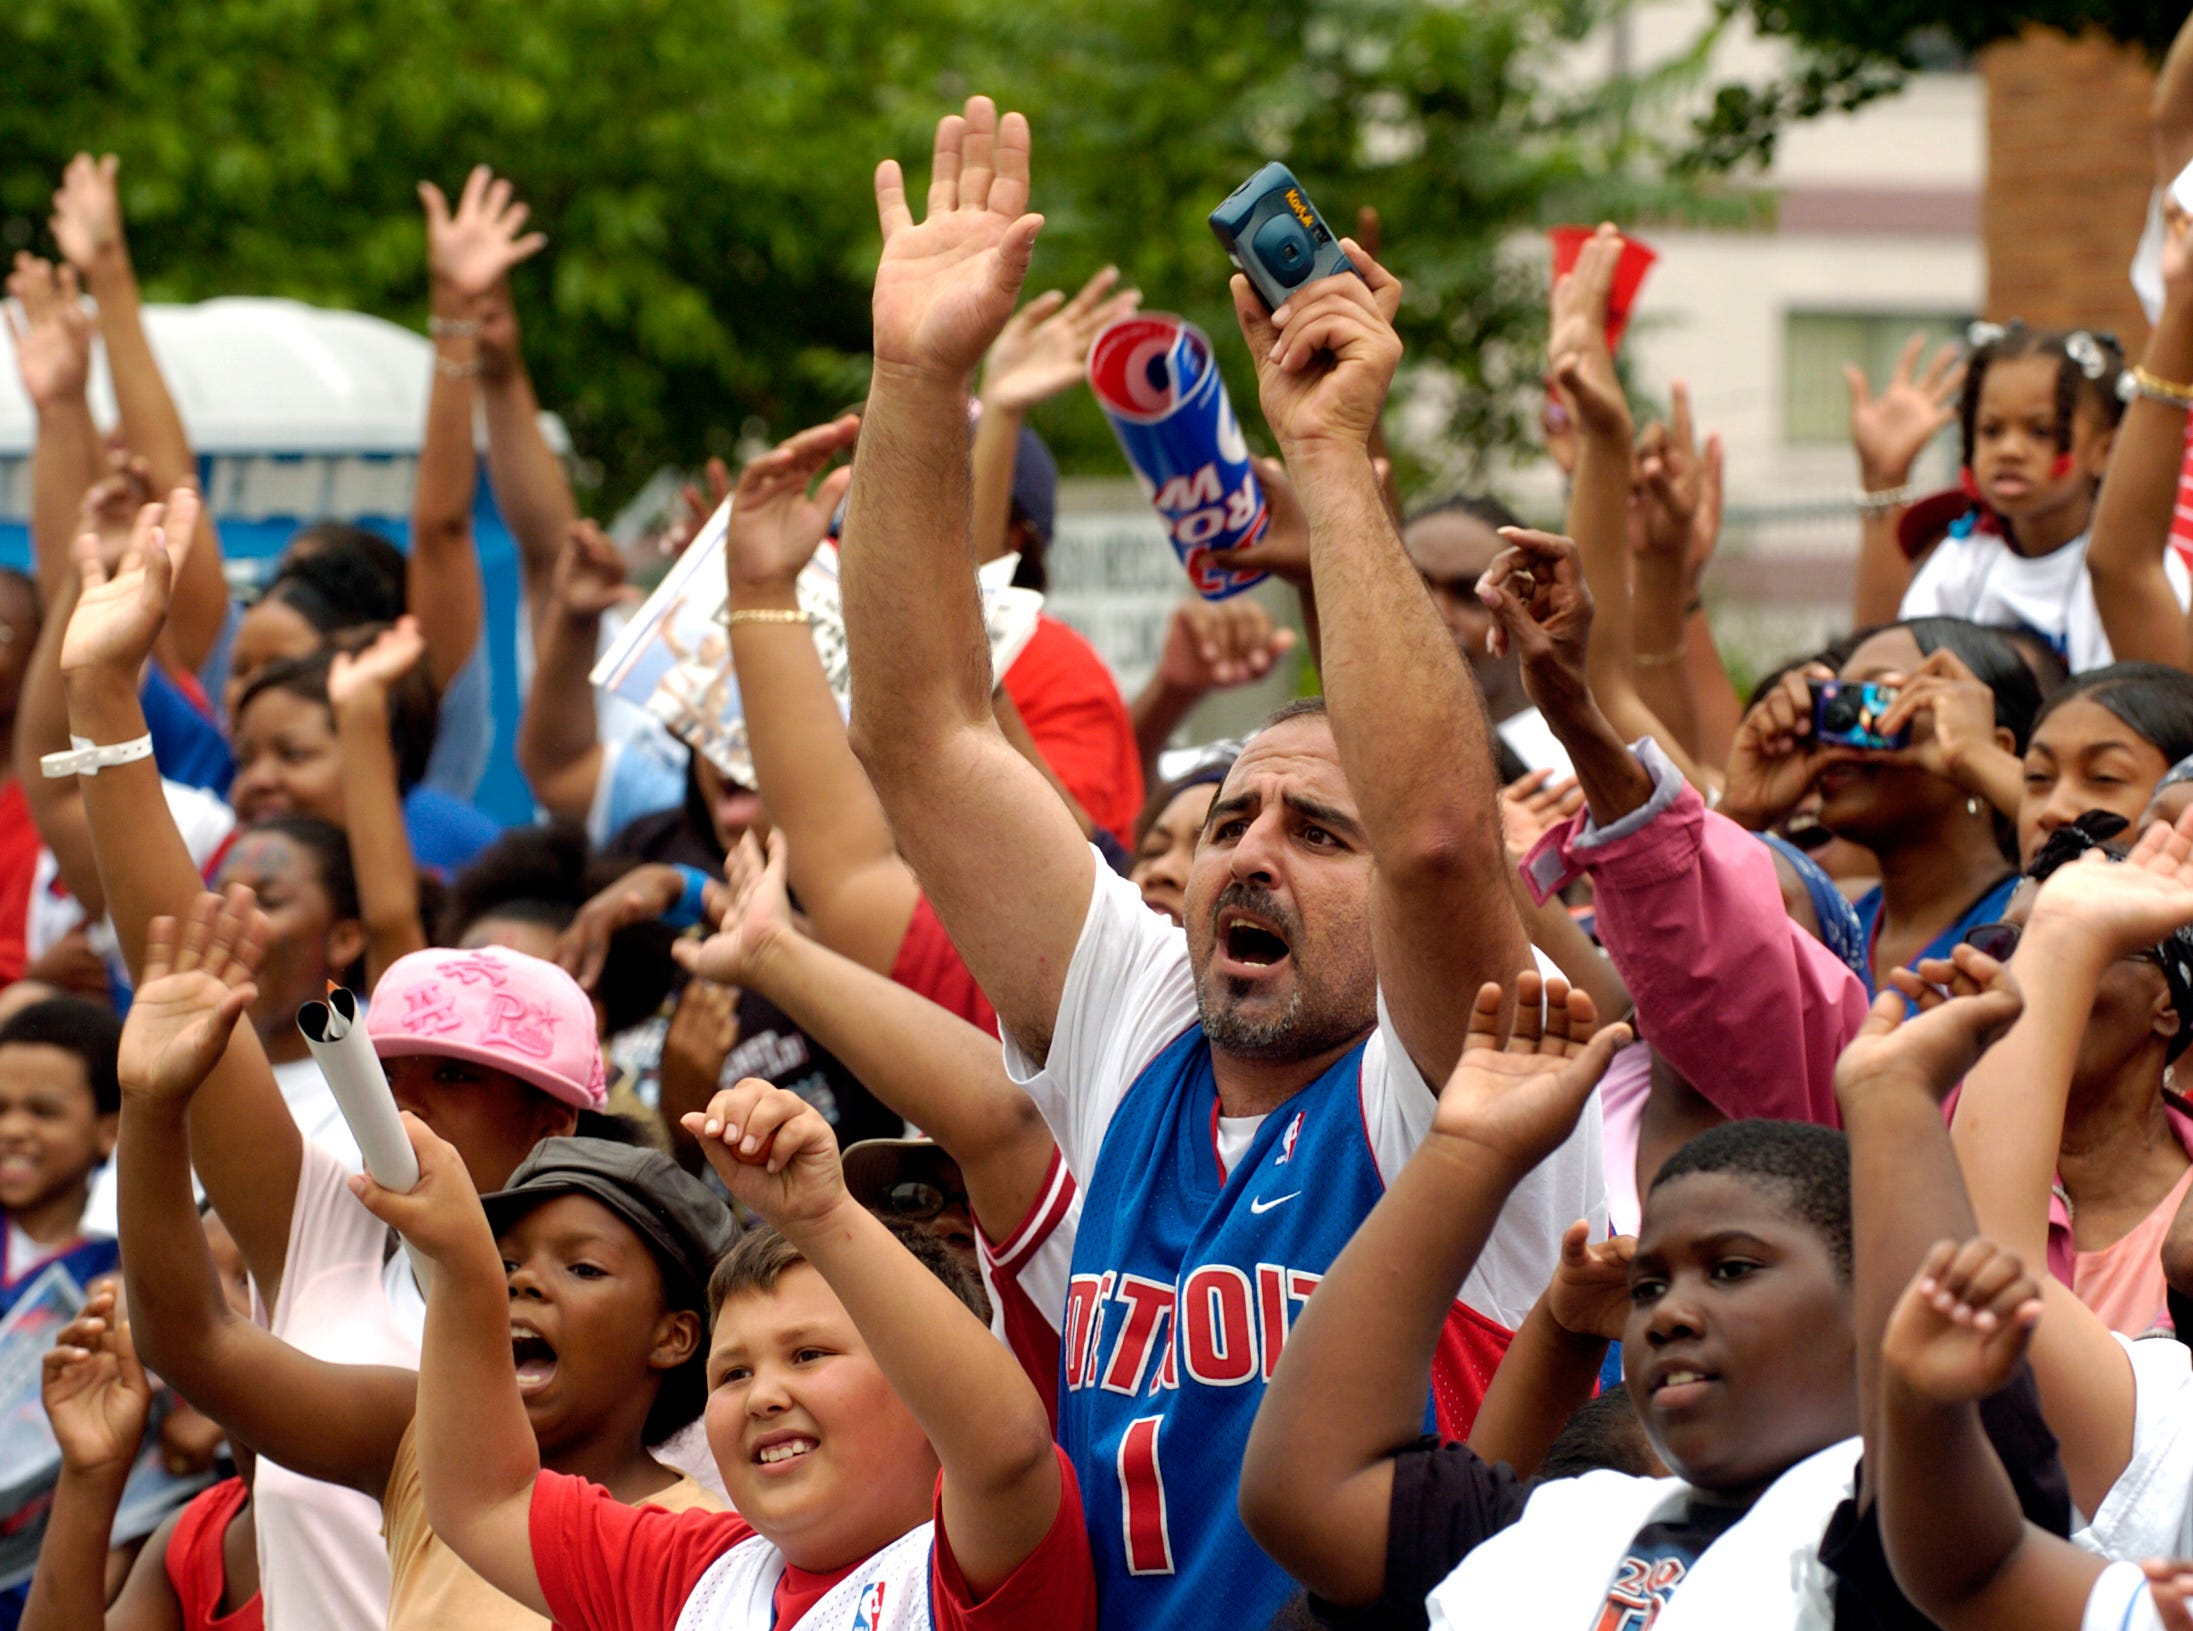 Thousands of fans line Jefferson Avenue to cheer the 2004 NBA champion Detroit Pistons.